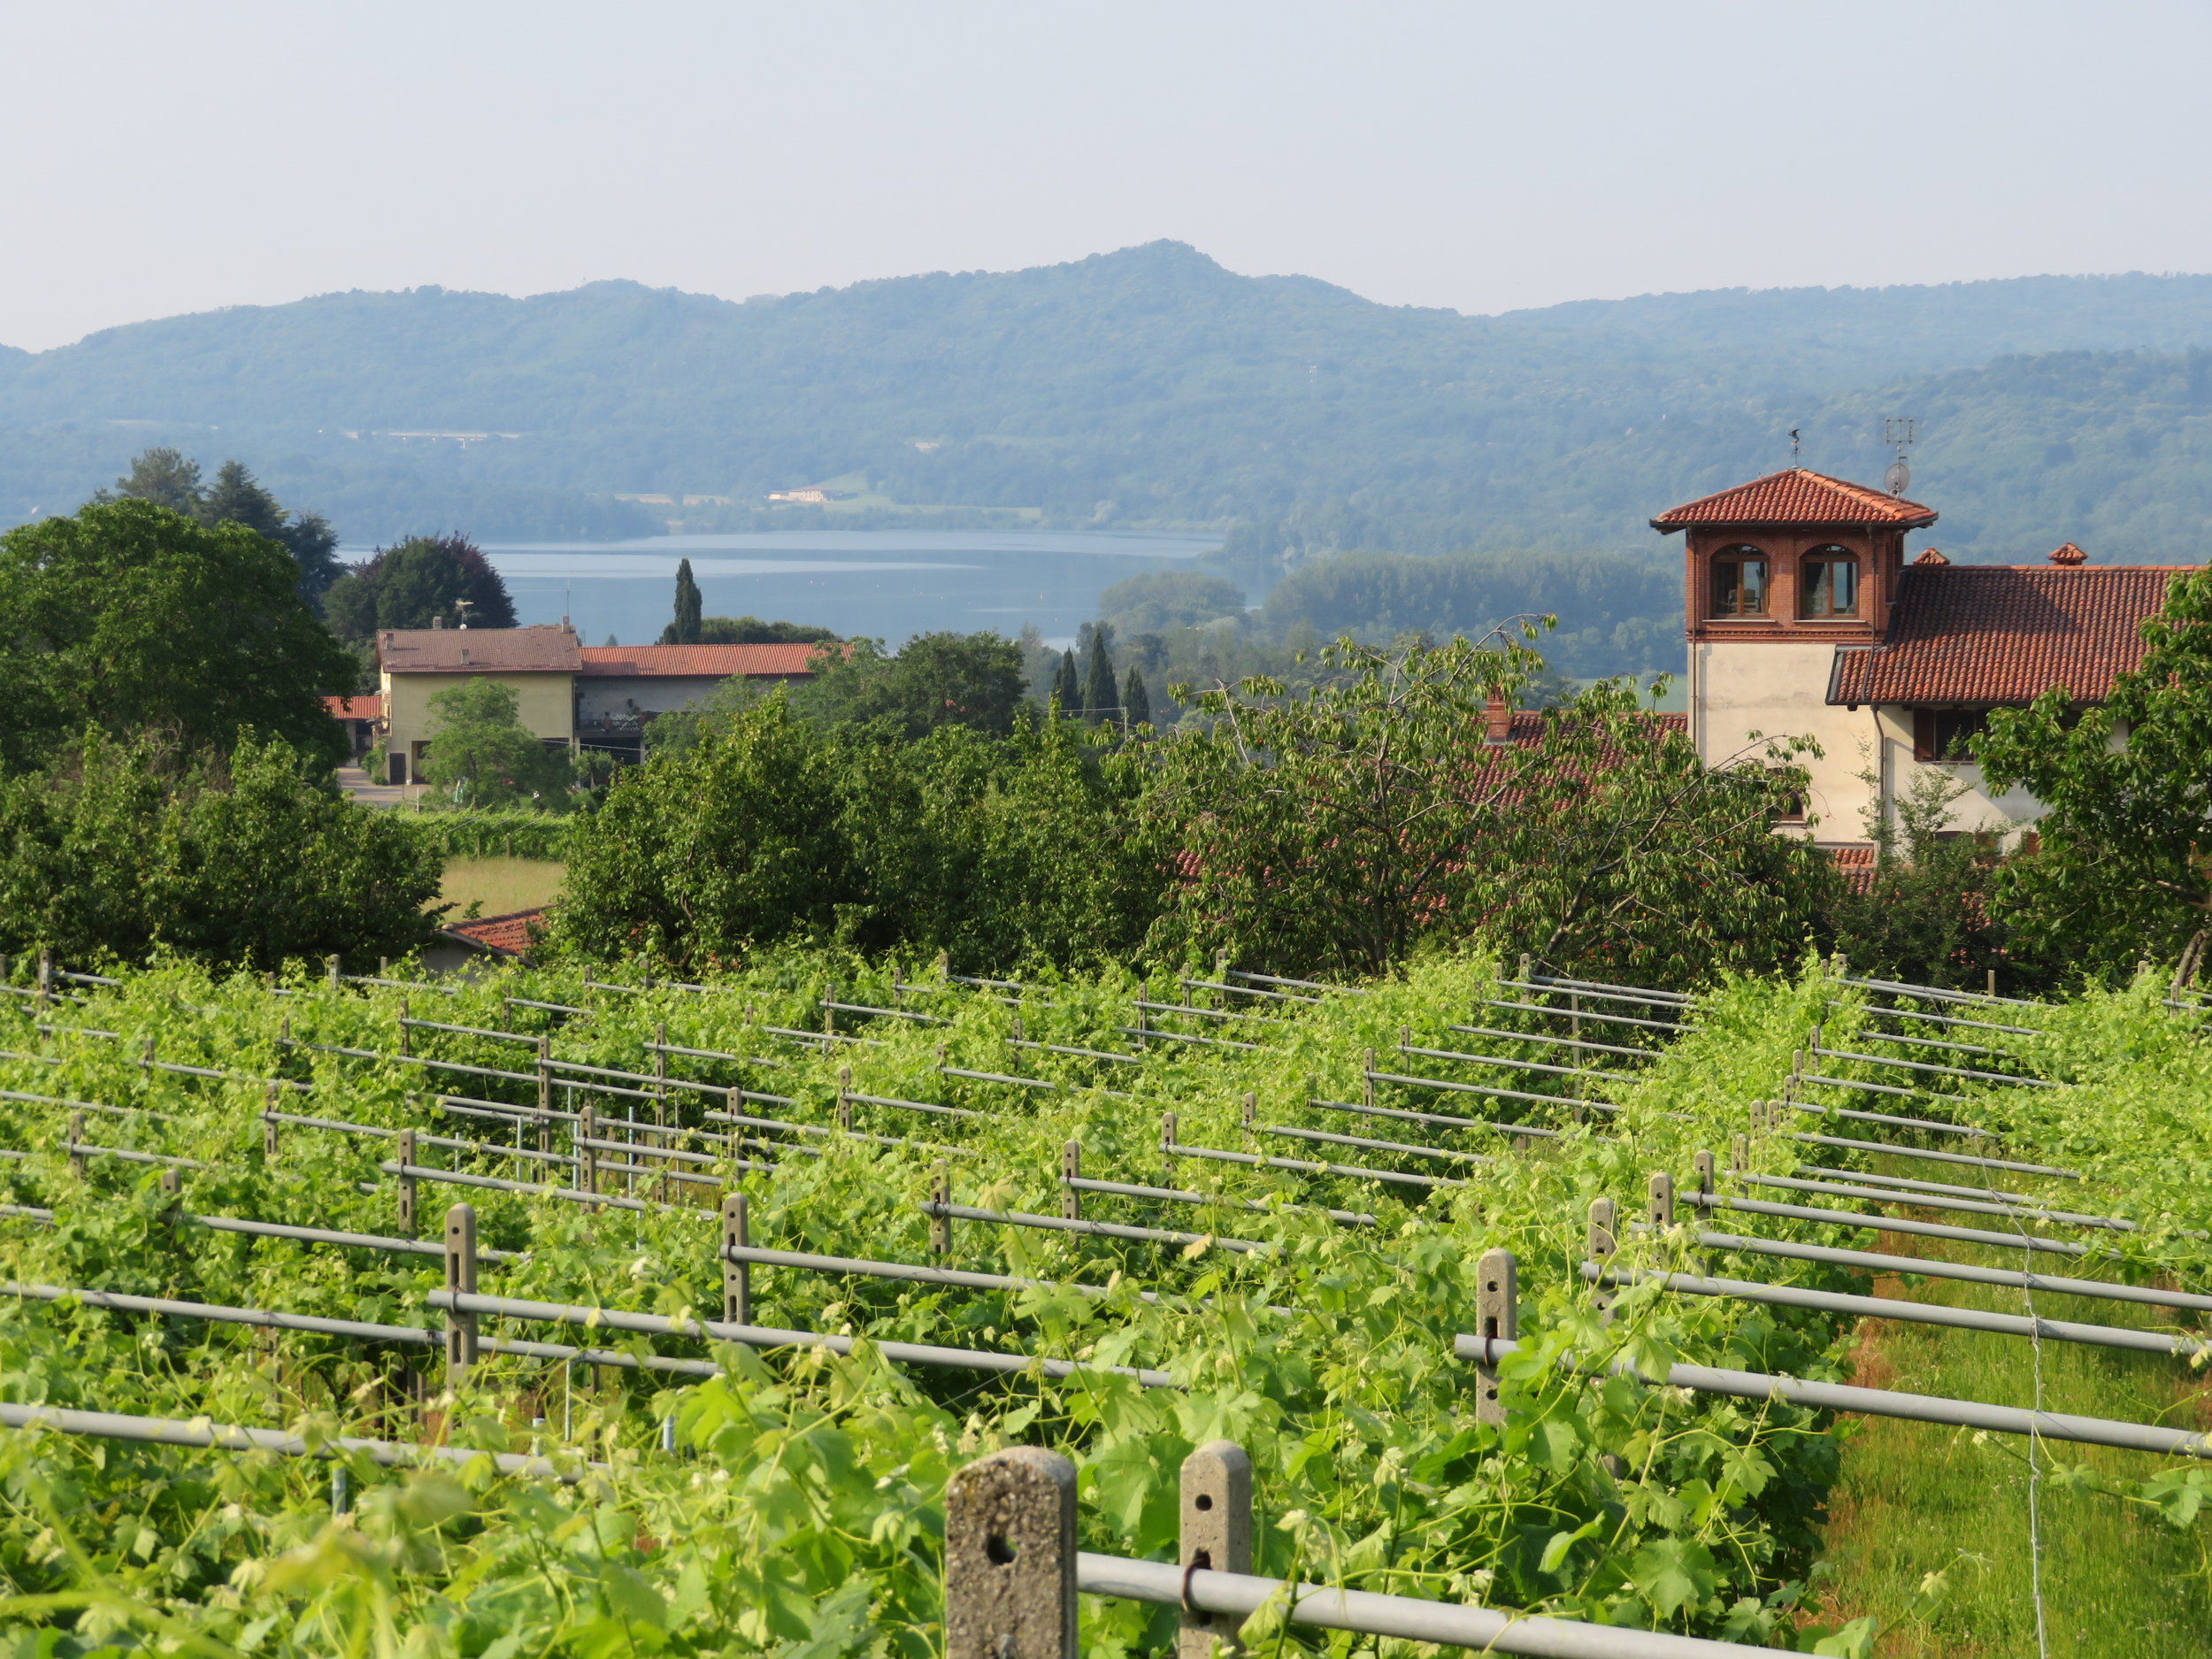 The climate of the Piedmont region in the foothills of the Alps provide a perfect area for vineyards.